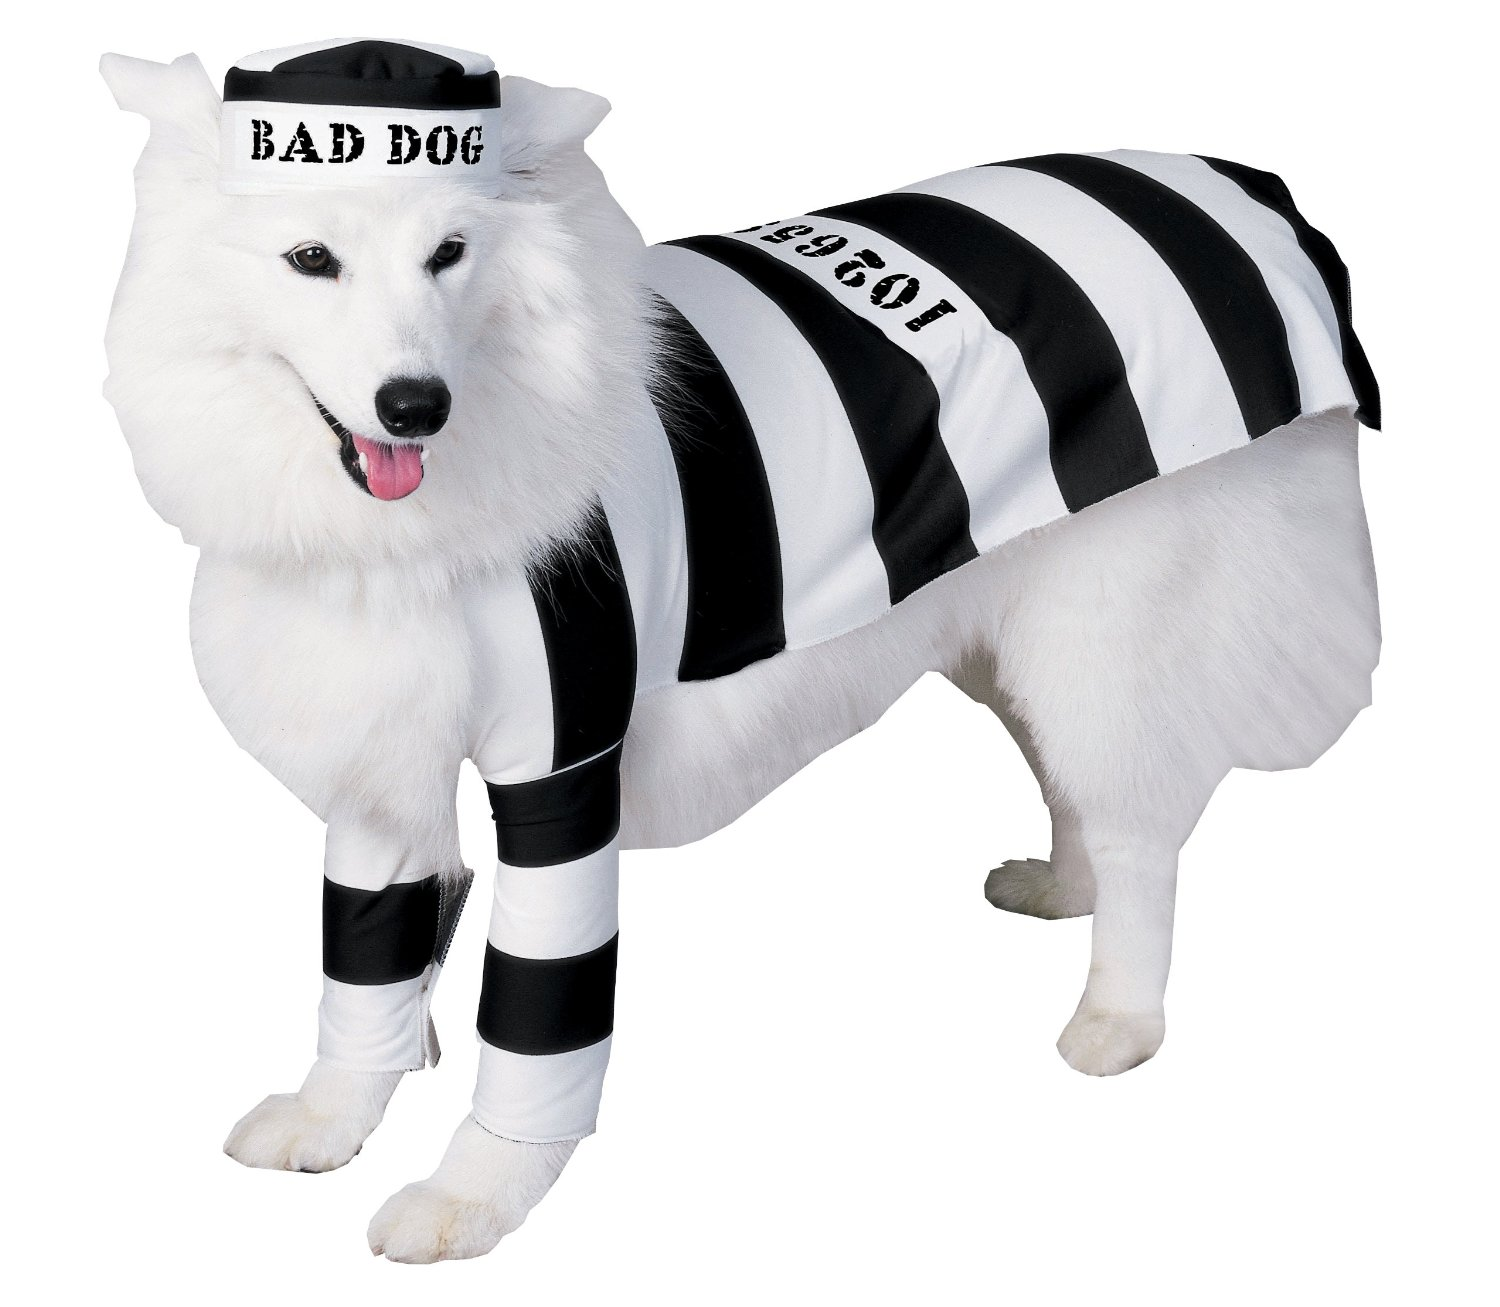 Jail dog costume